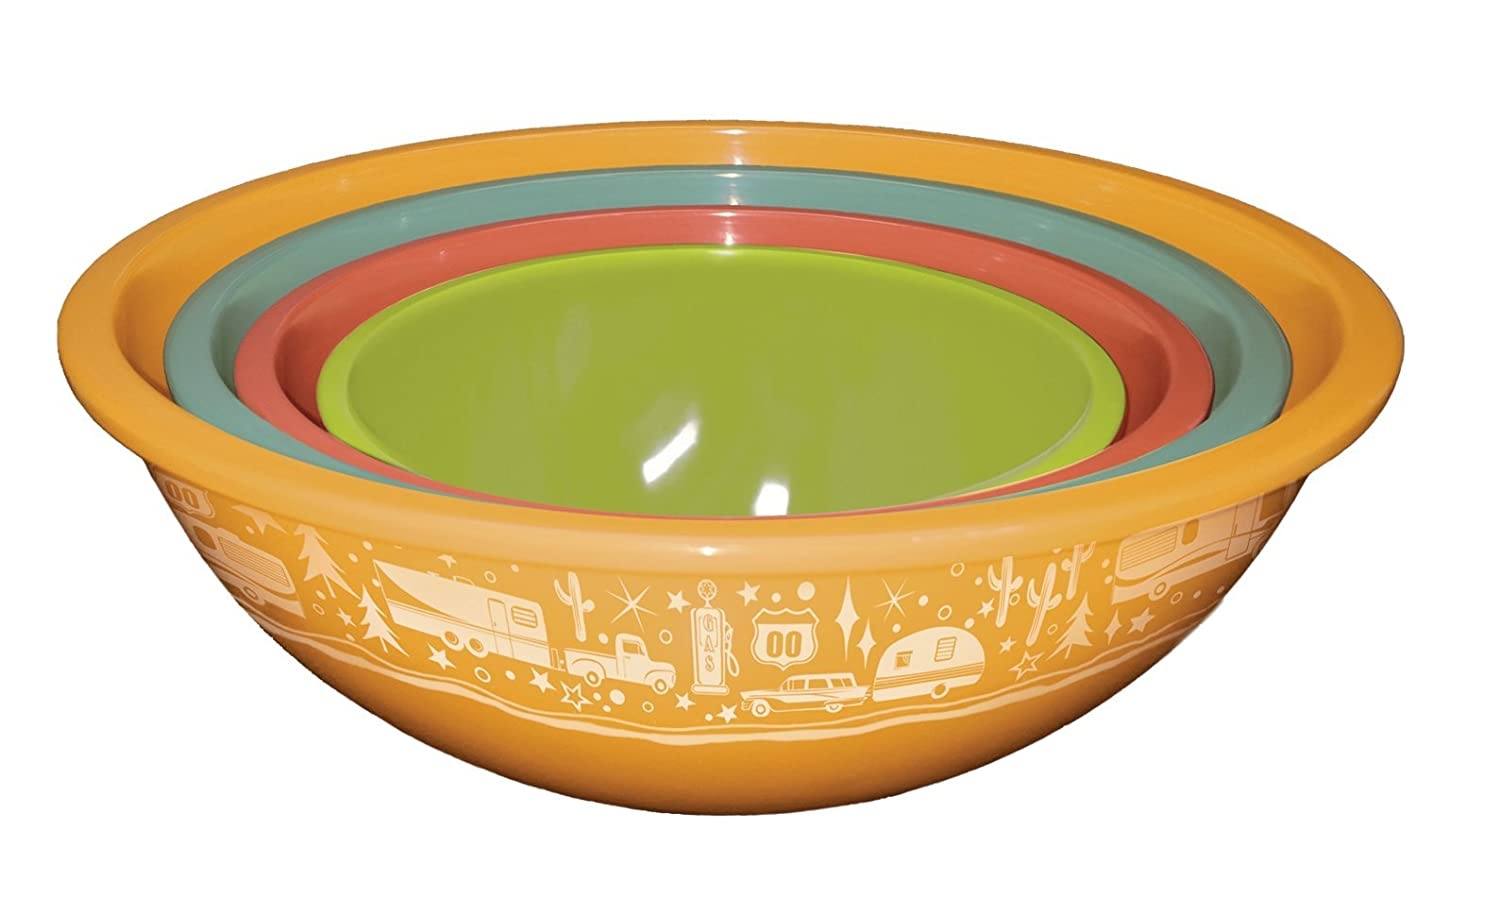 Camp Casual Nesting Bowl Set made our list of camper gifts that make perfect RV gifts which are unique gifts for RV owners